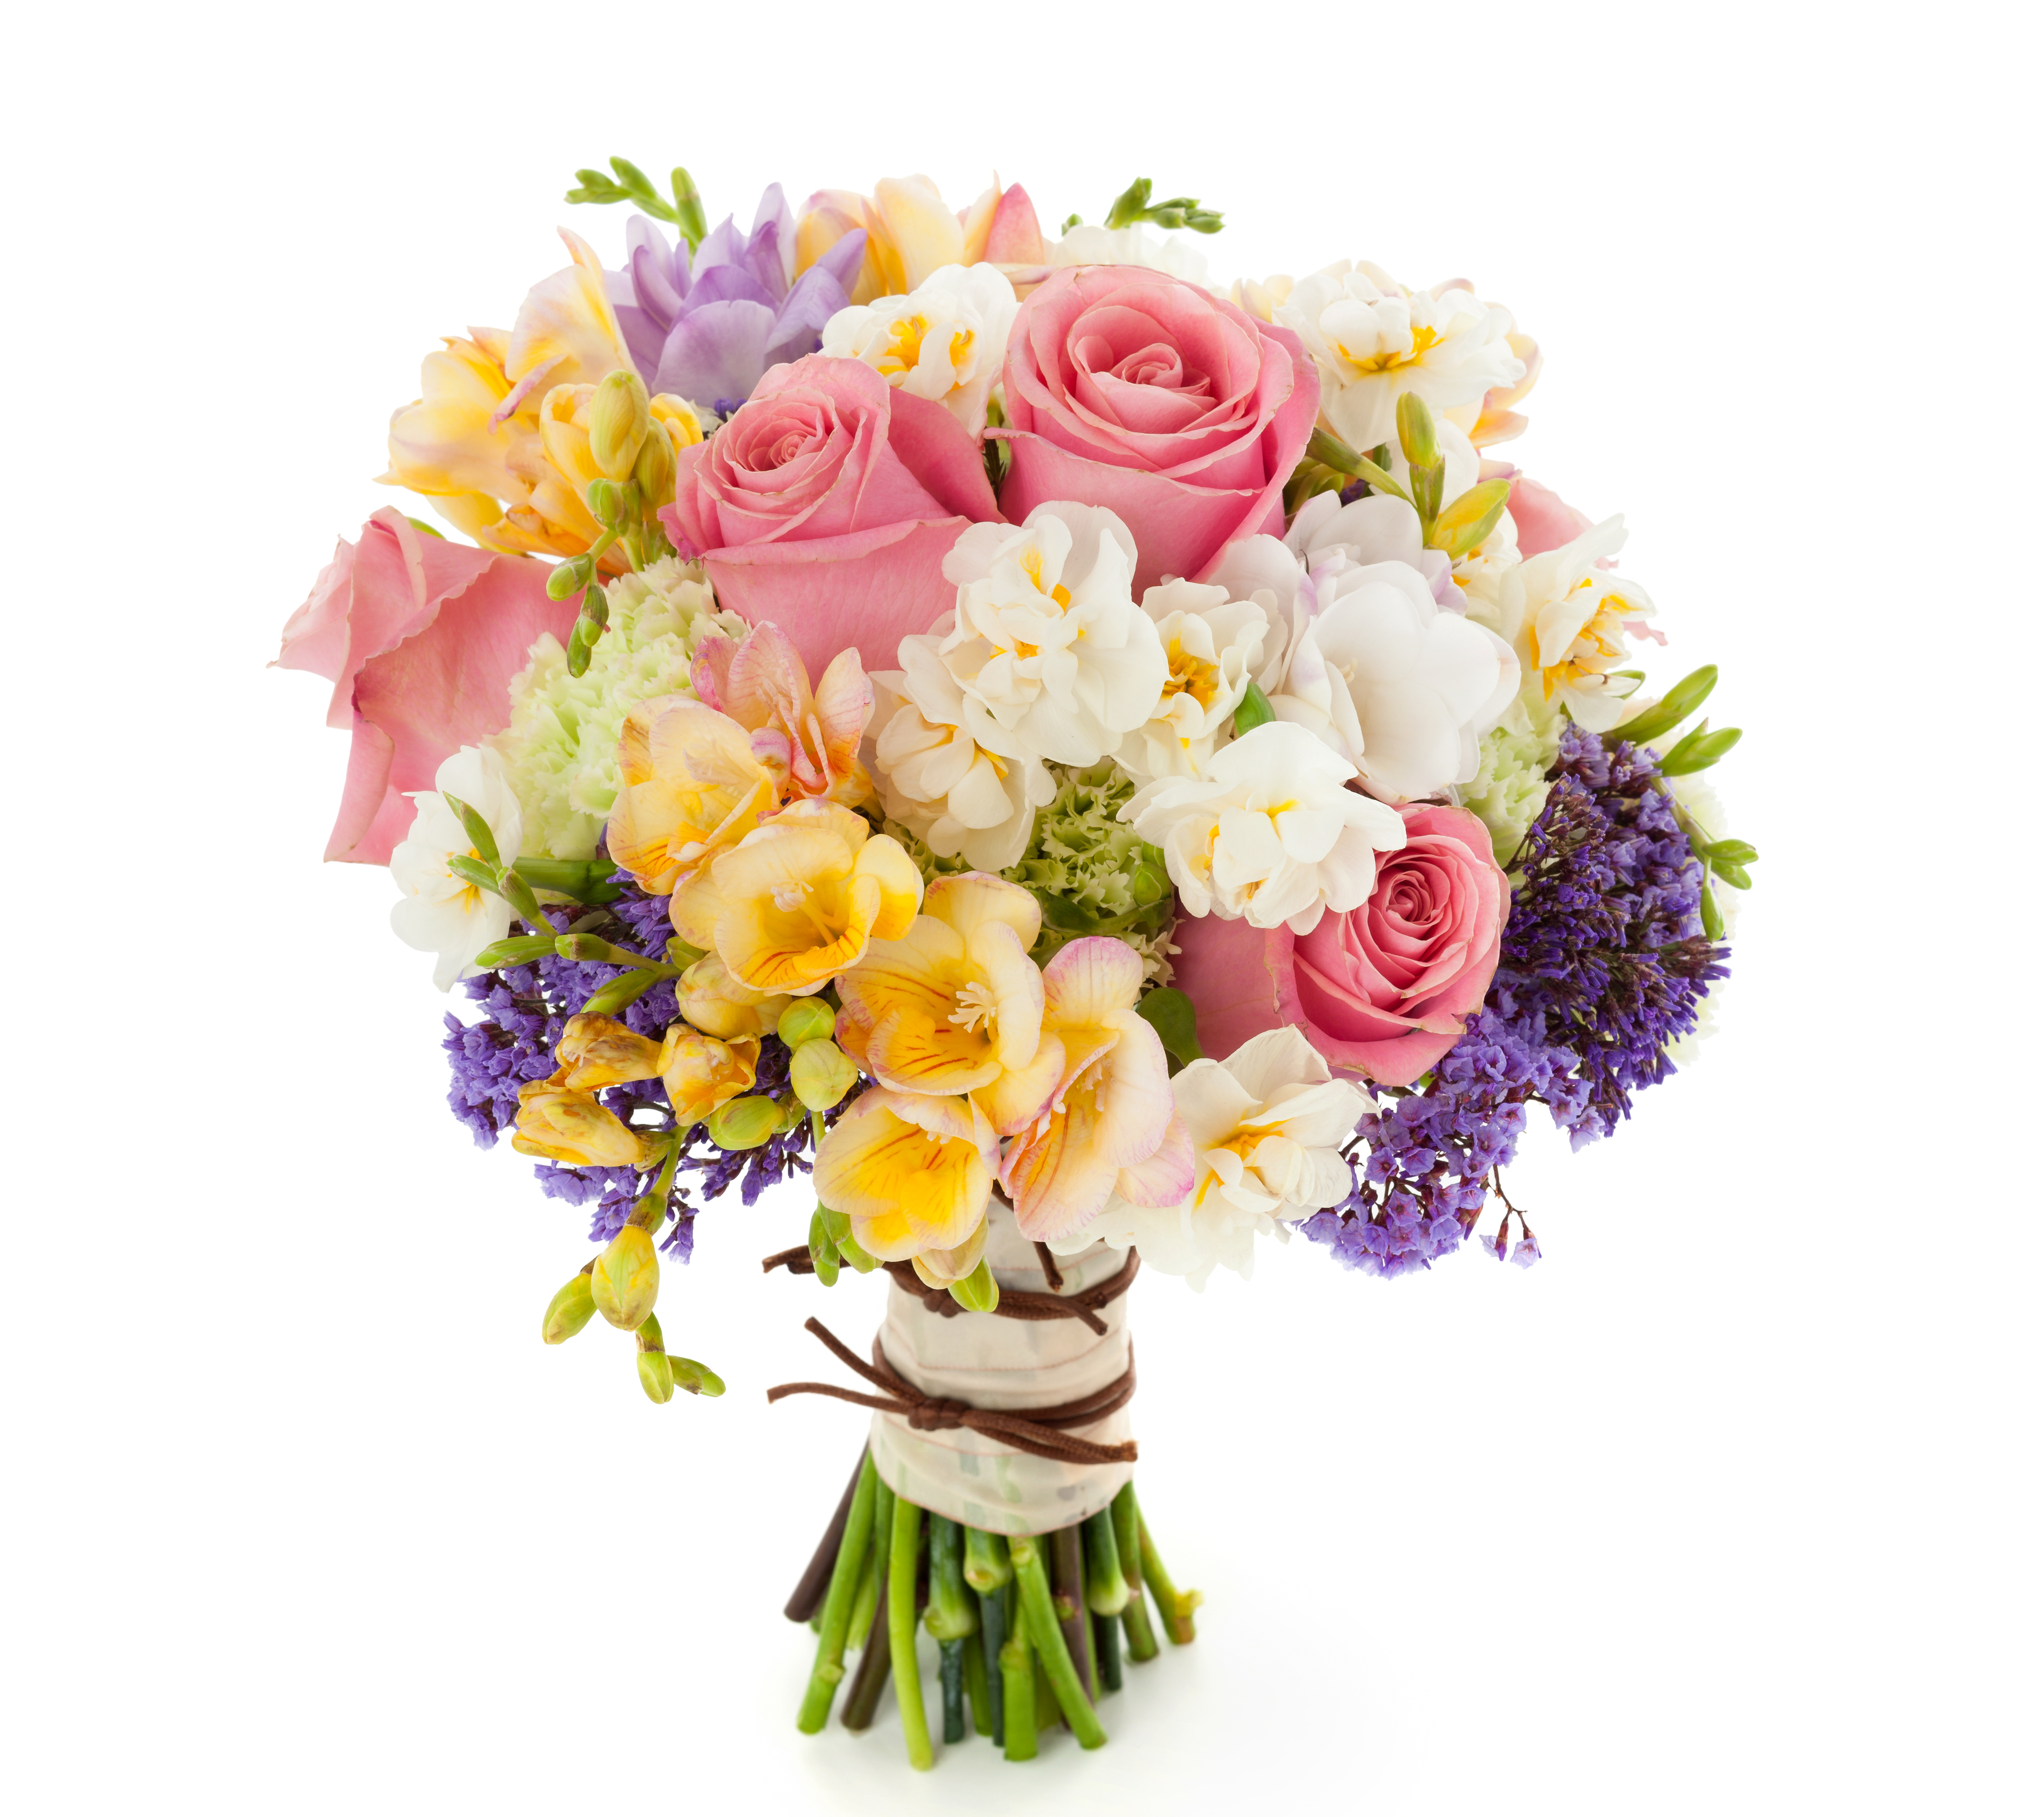 Roses and freesia bouquet 4k ultra hd wallpaper and background image man made flower pink flower bouquet colors spring rose freesia white flower yellow flower wallpaper izmirmasajfo Image collections